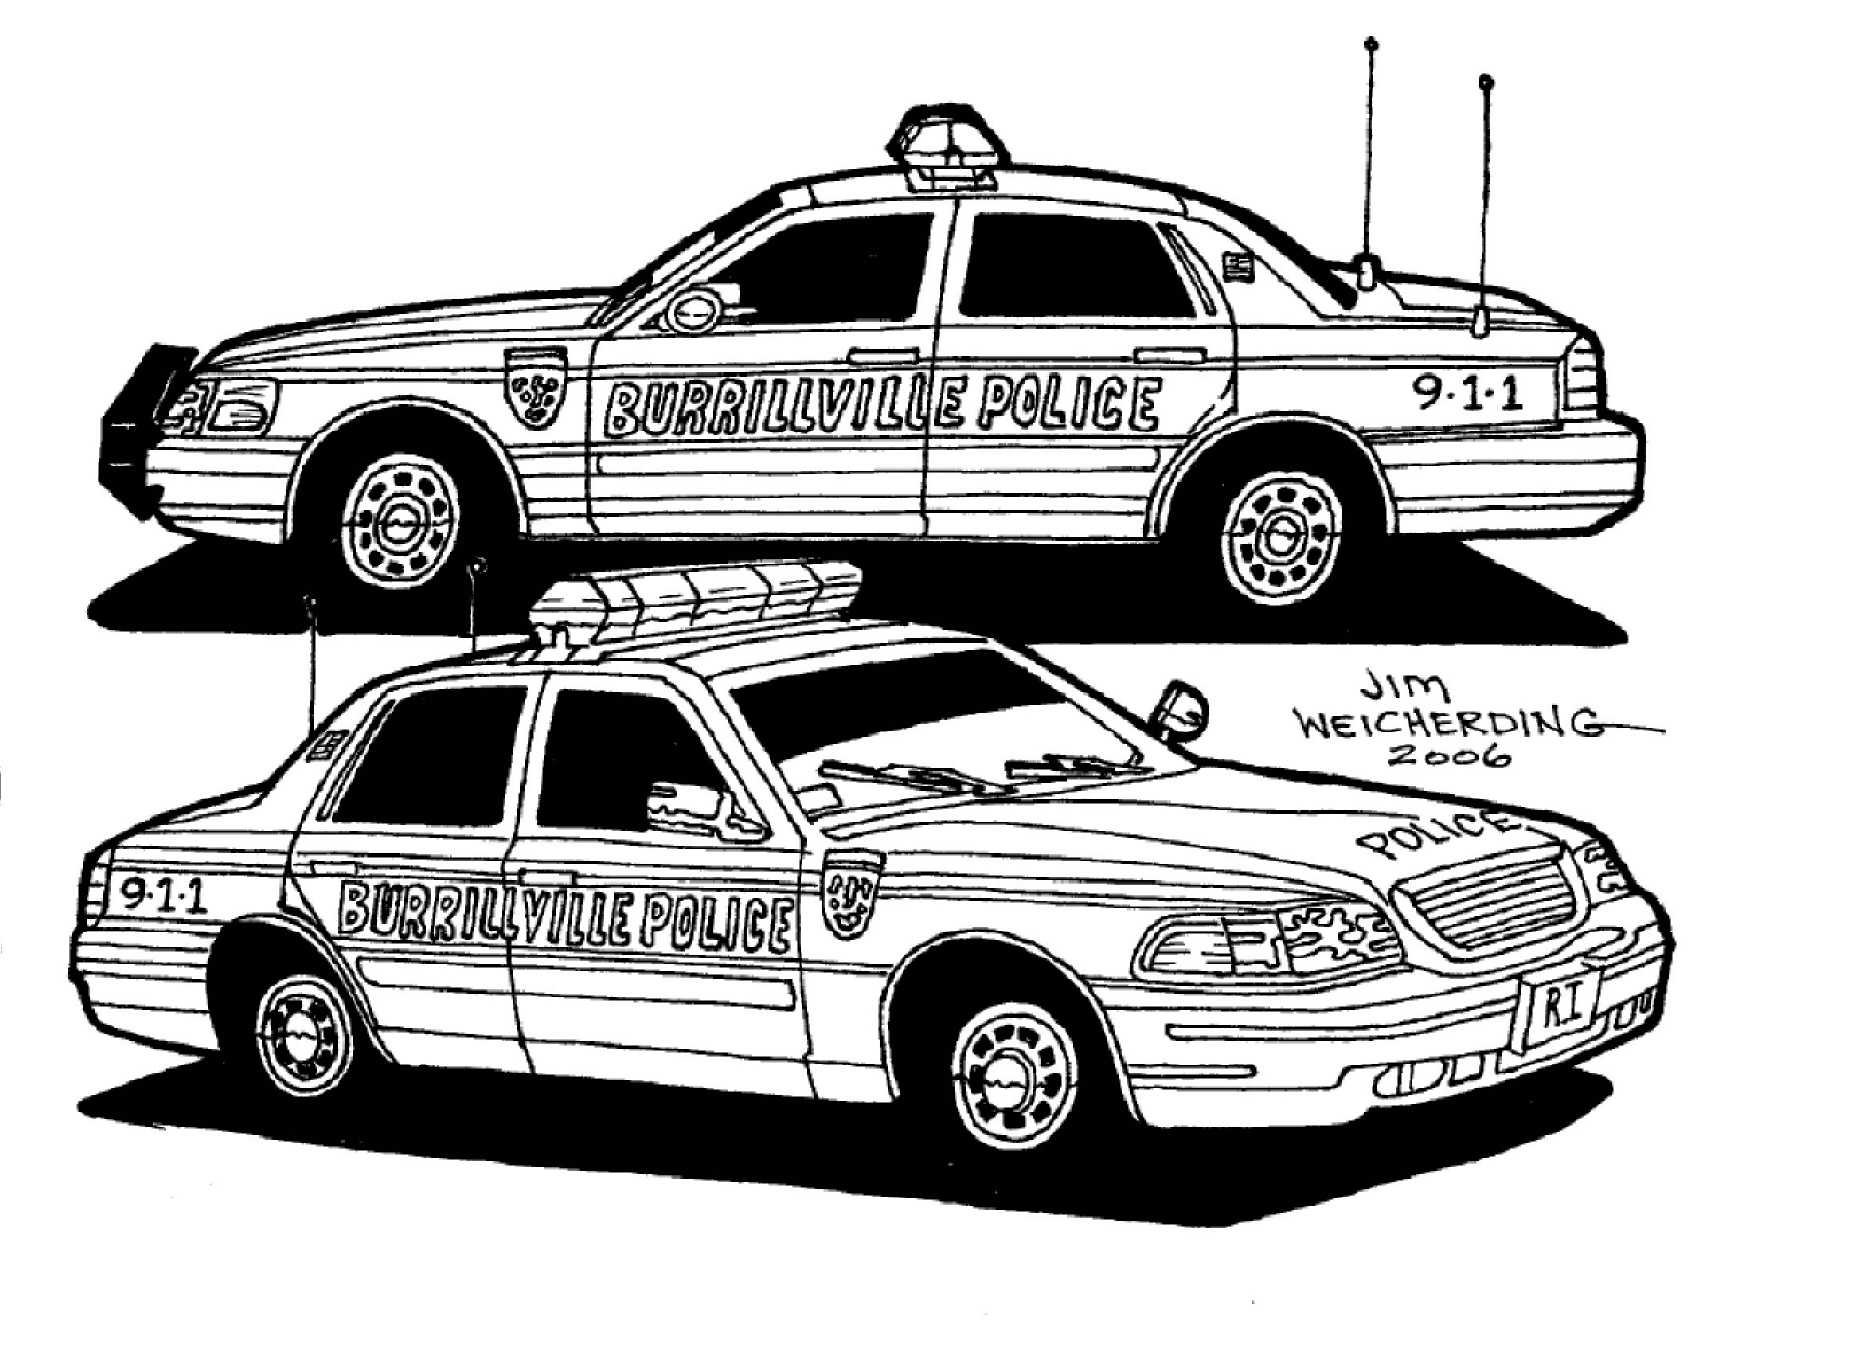 It's just a photo of Dashing printable coloring pages of police cars